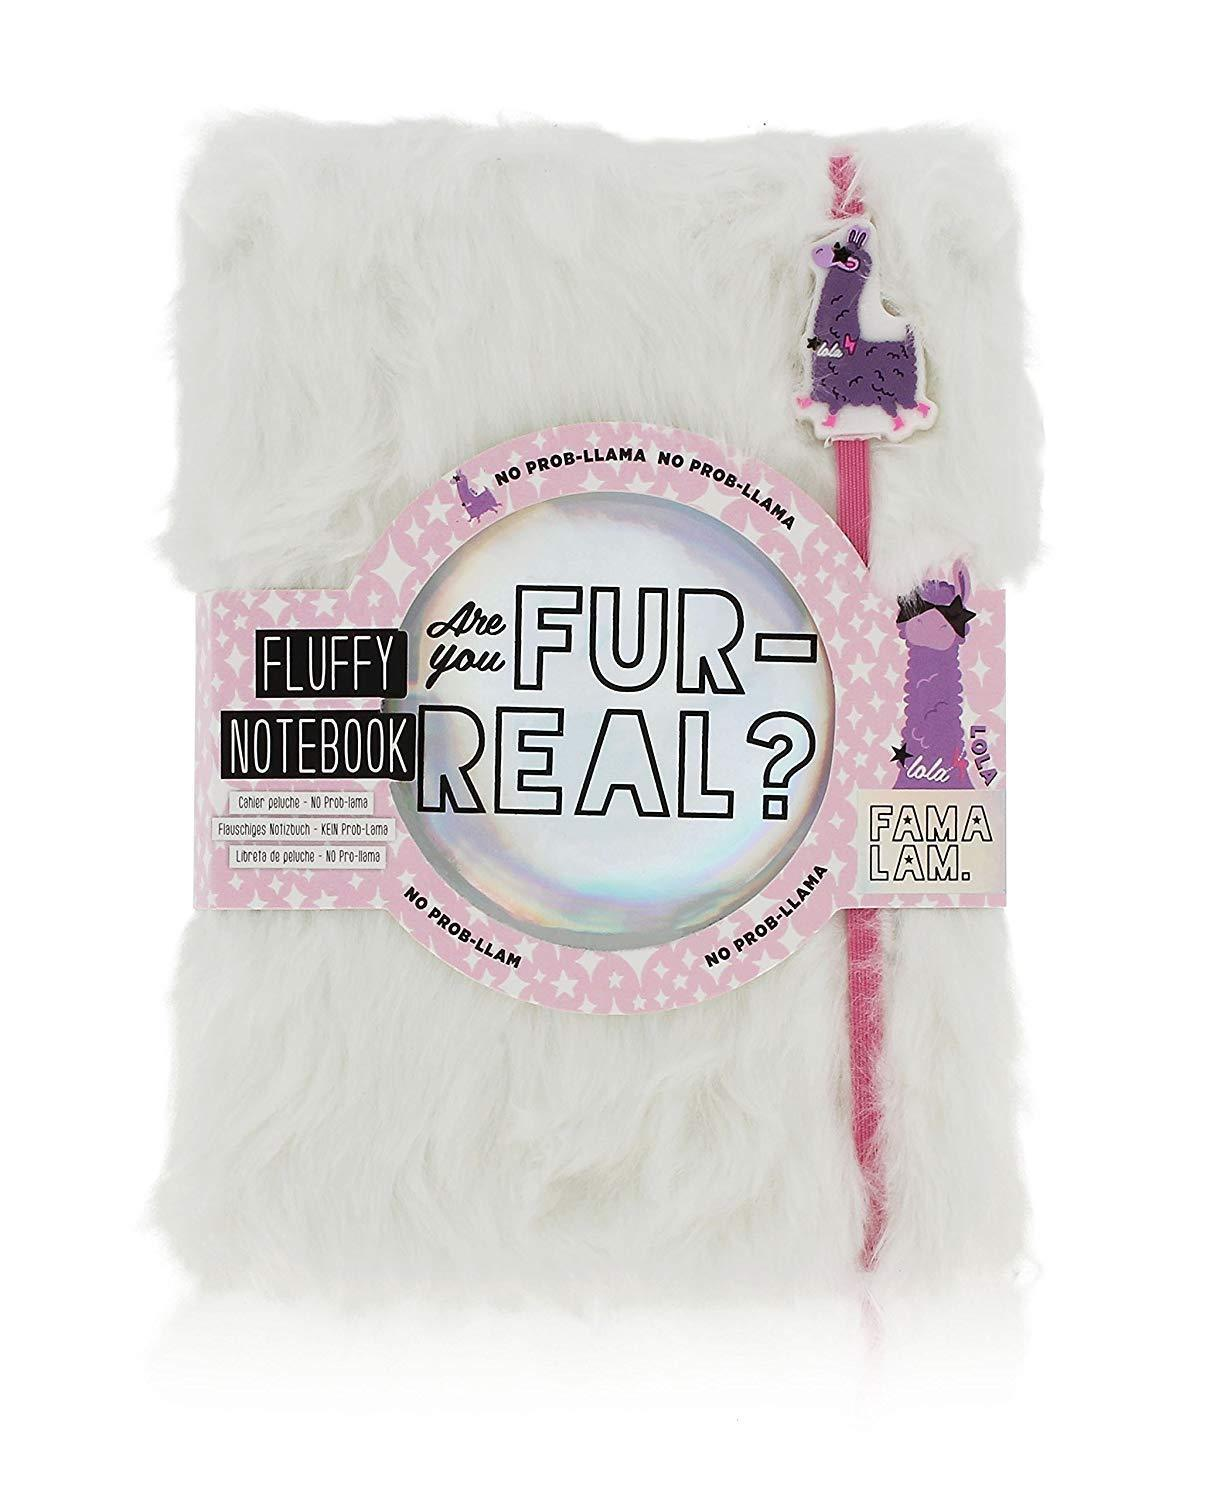 Primary image for Purple Lola Llama Fluffy 80 Page Notebook Are you Fur Real? 5.75 x 8""